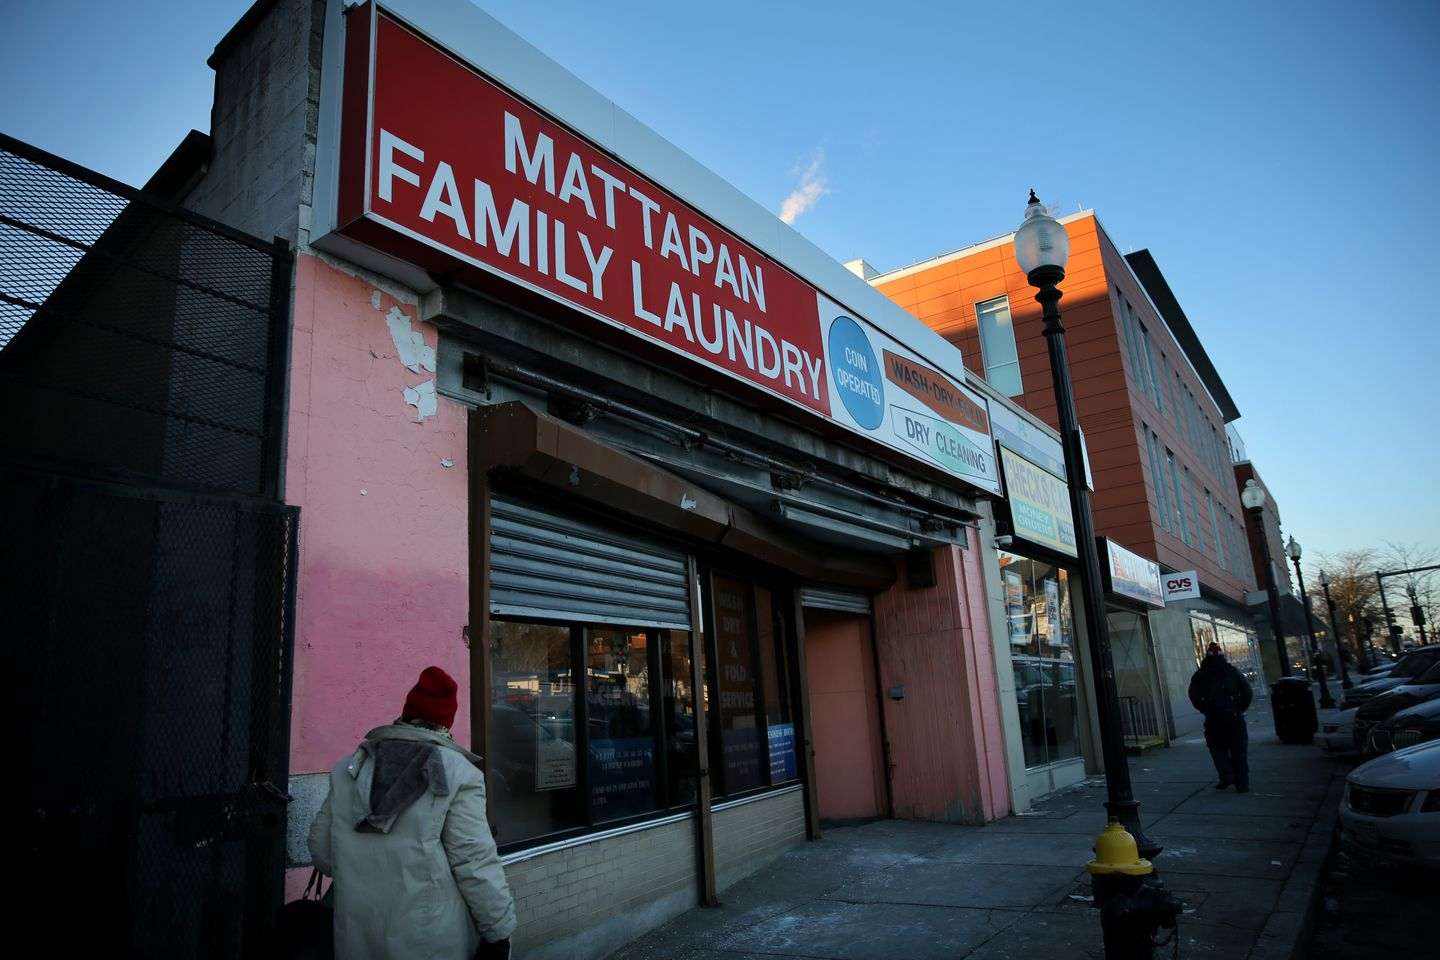 Tito Jackson hopes to open his pot store in this laundromat facility on Blue Hill Avenue.